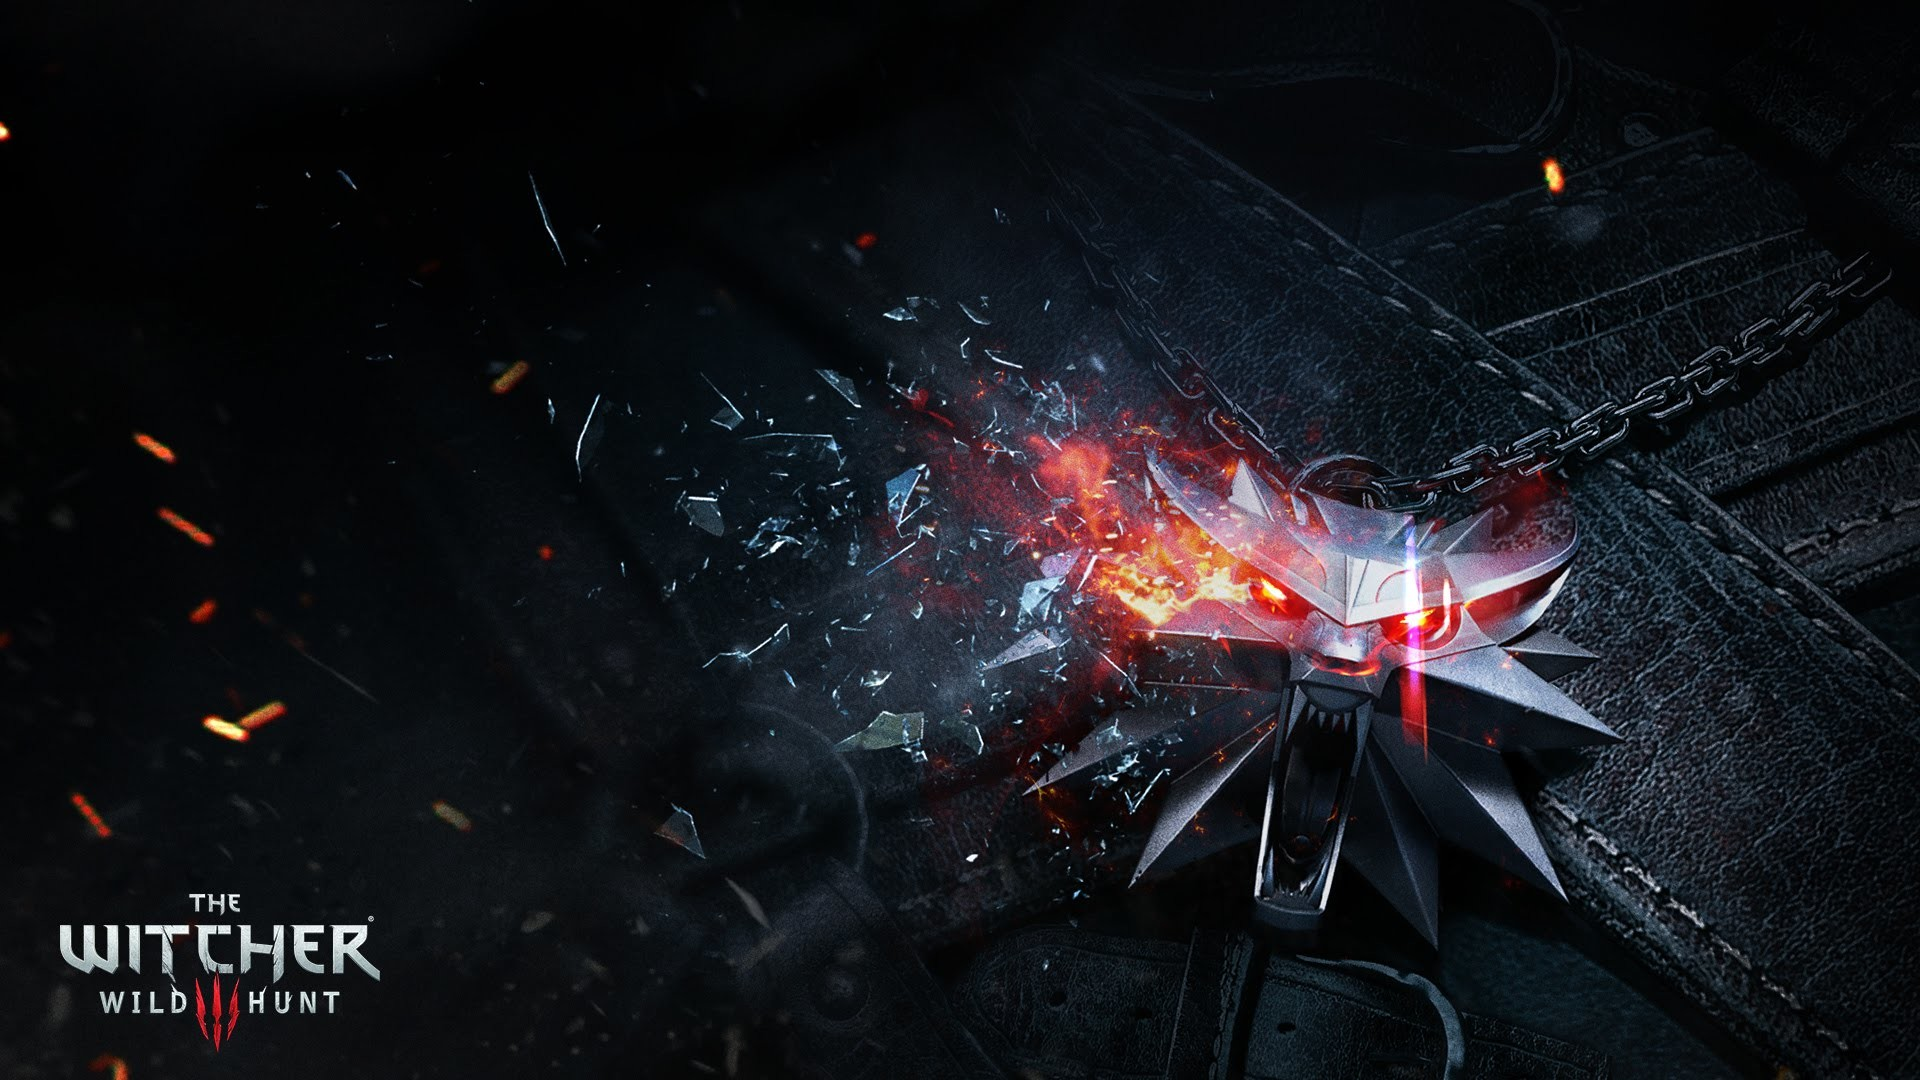 The Witcher 3 Exclusive OST Soundtrack And Wallpapers